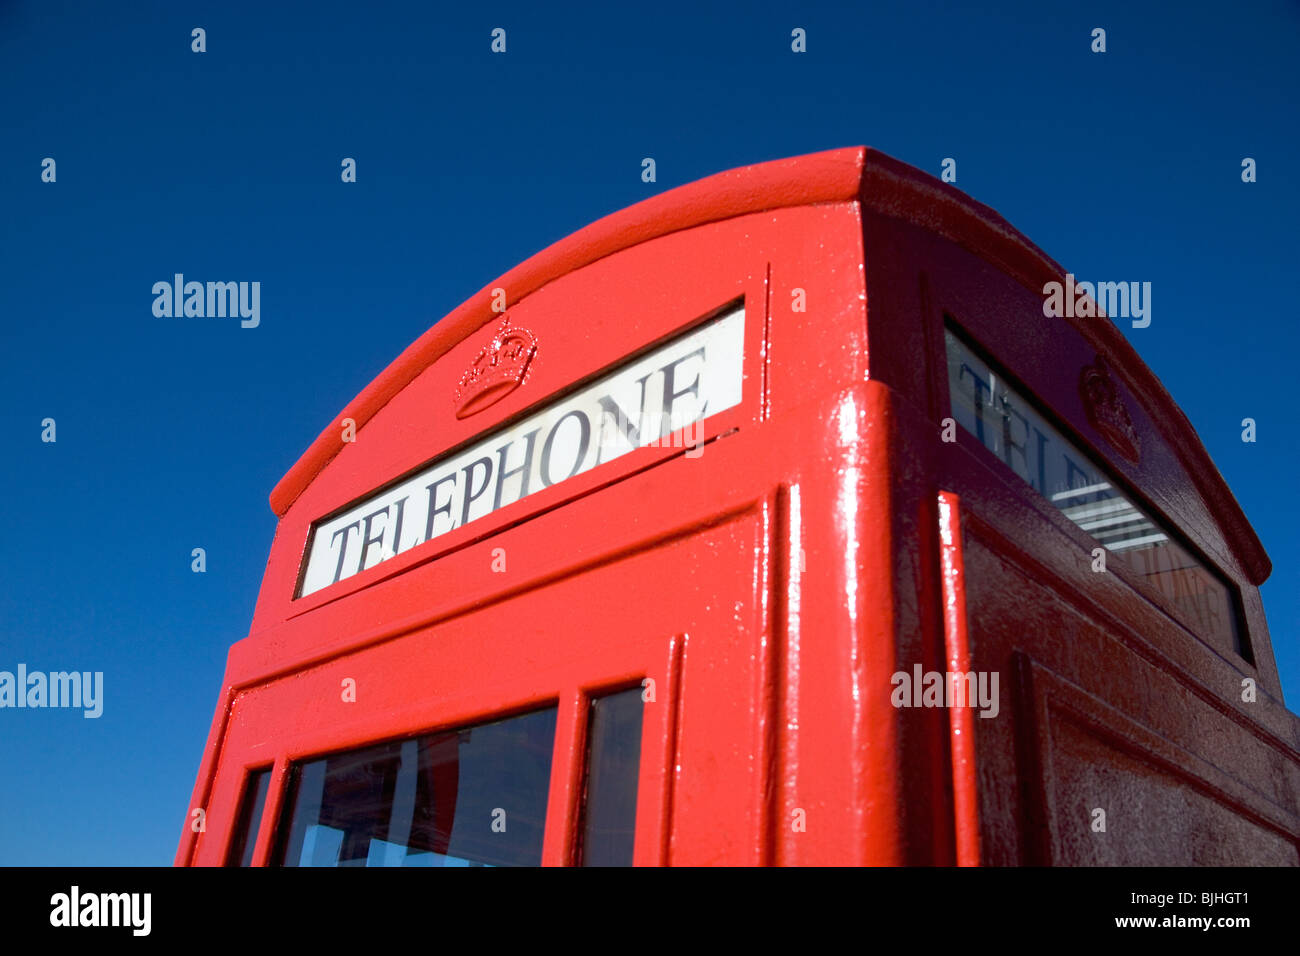 Telephone booth - Stock Image